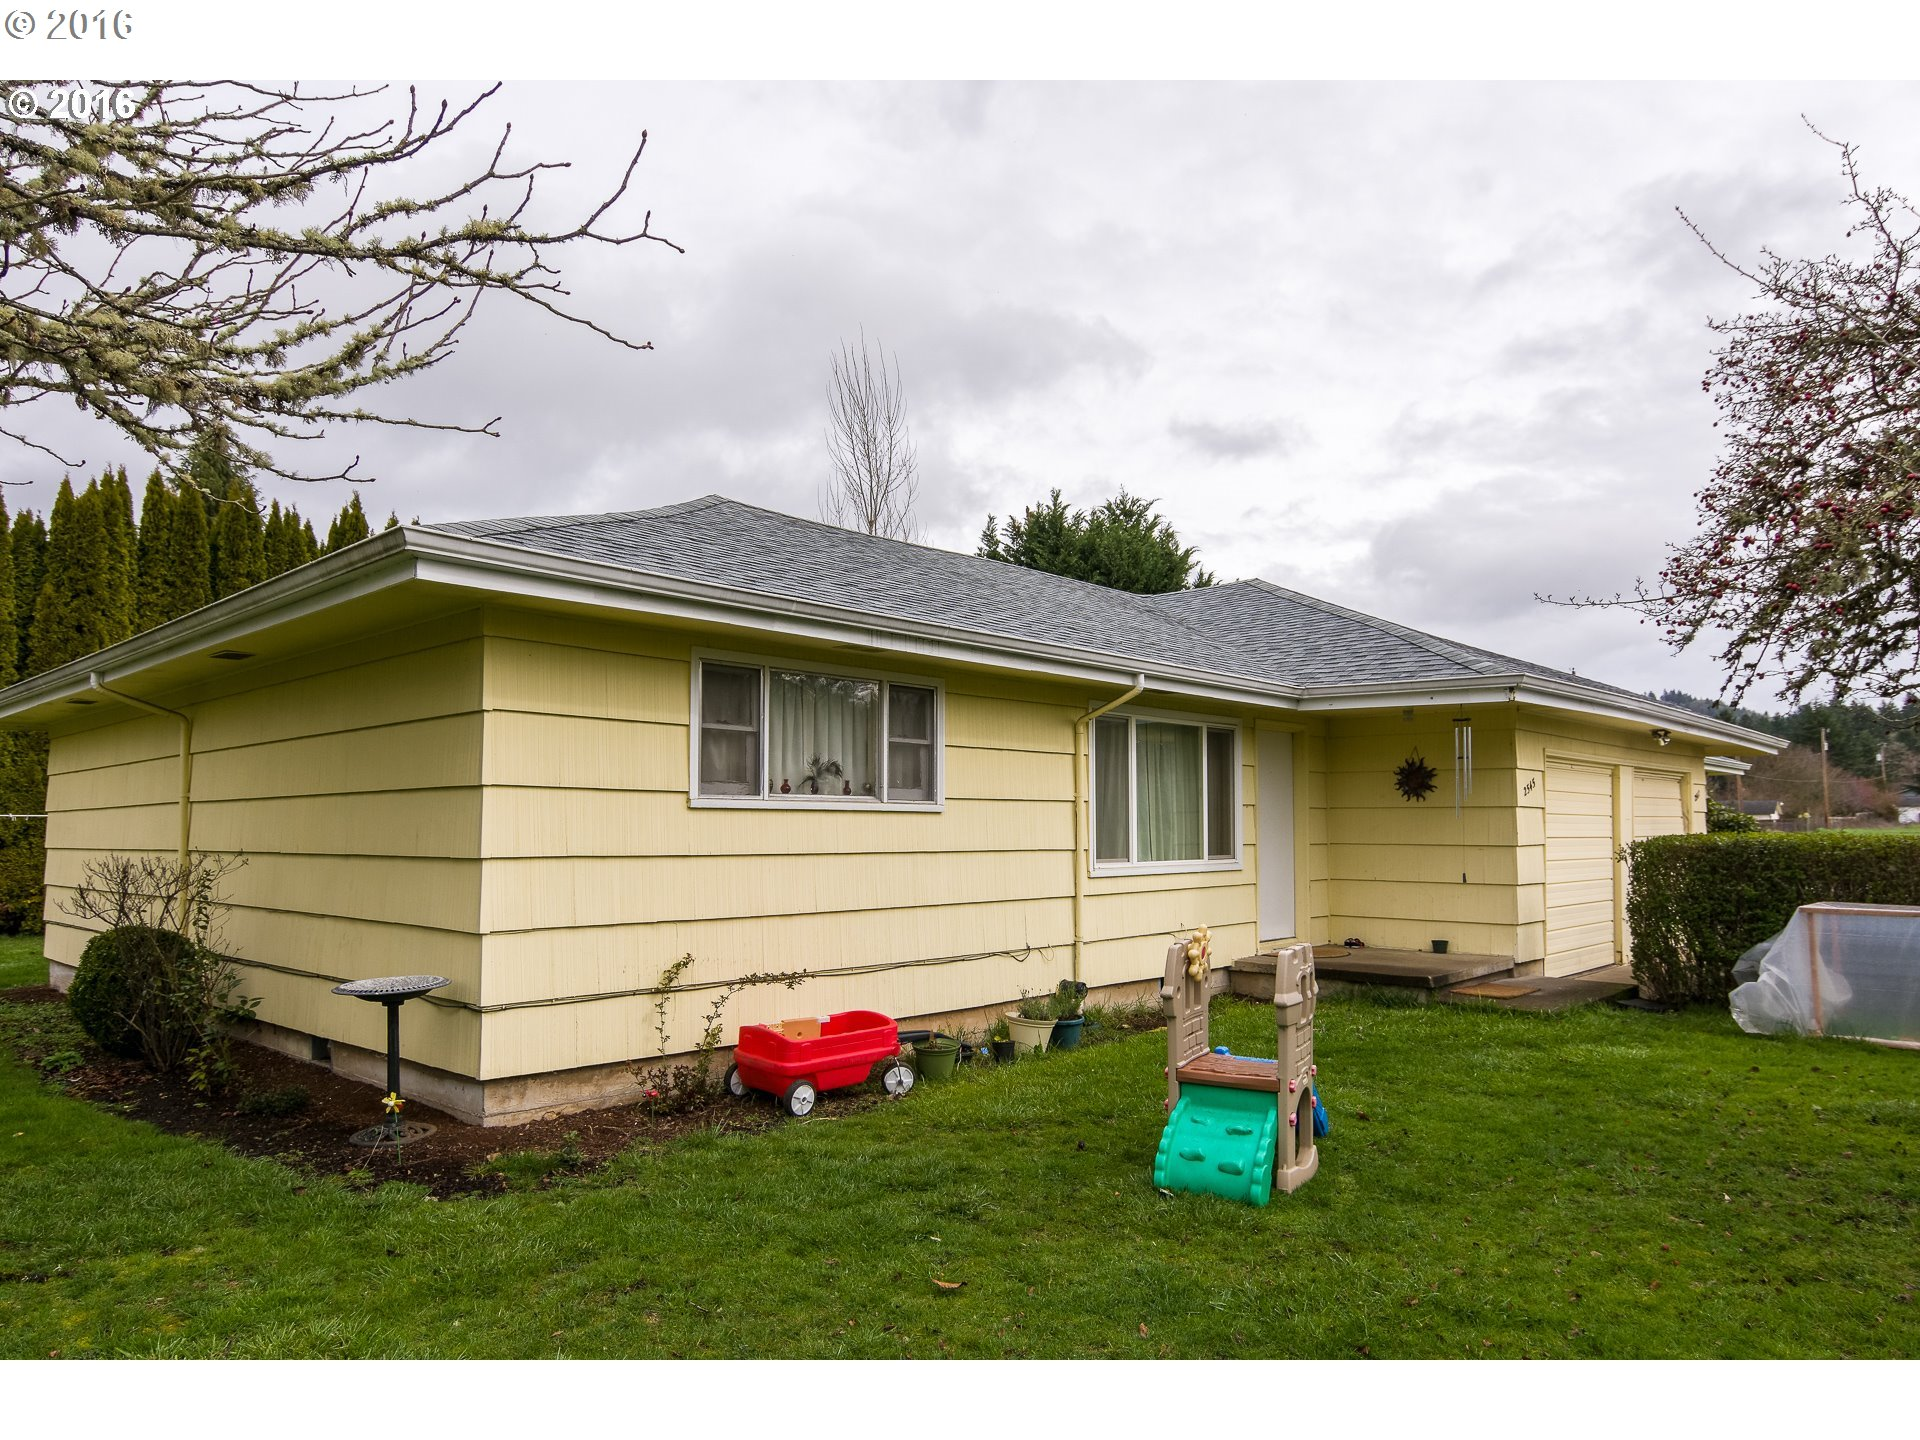 2545 31ST ST, Springfield, OR 97477